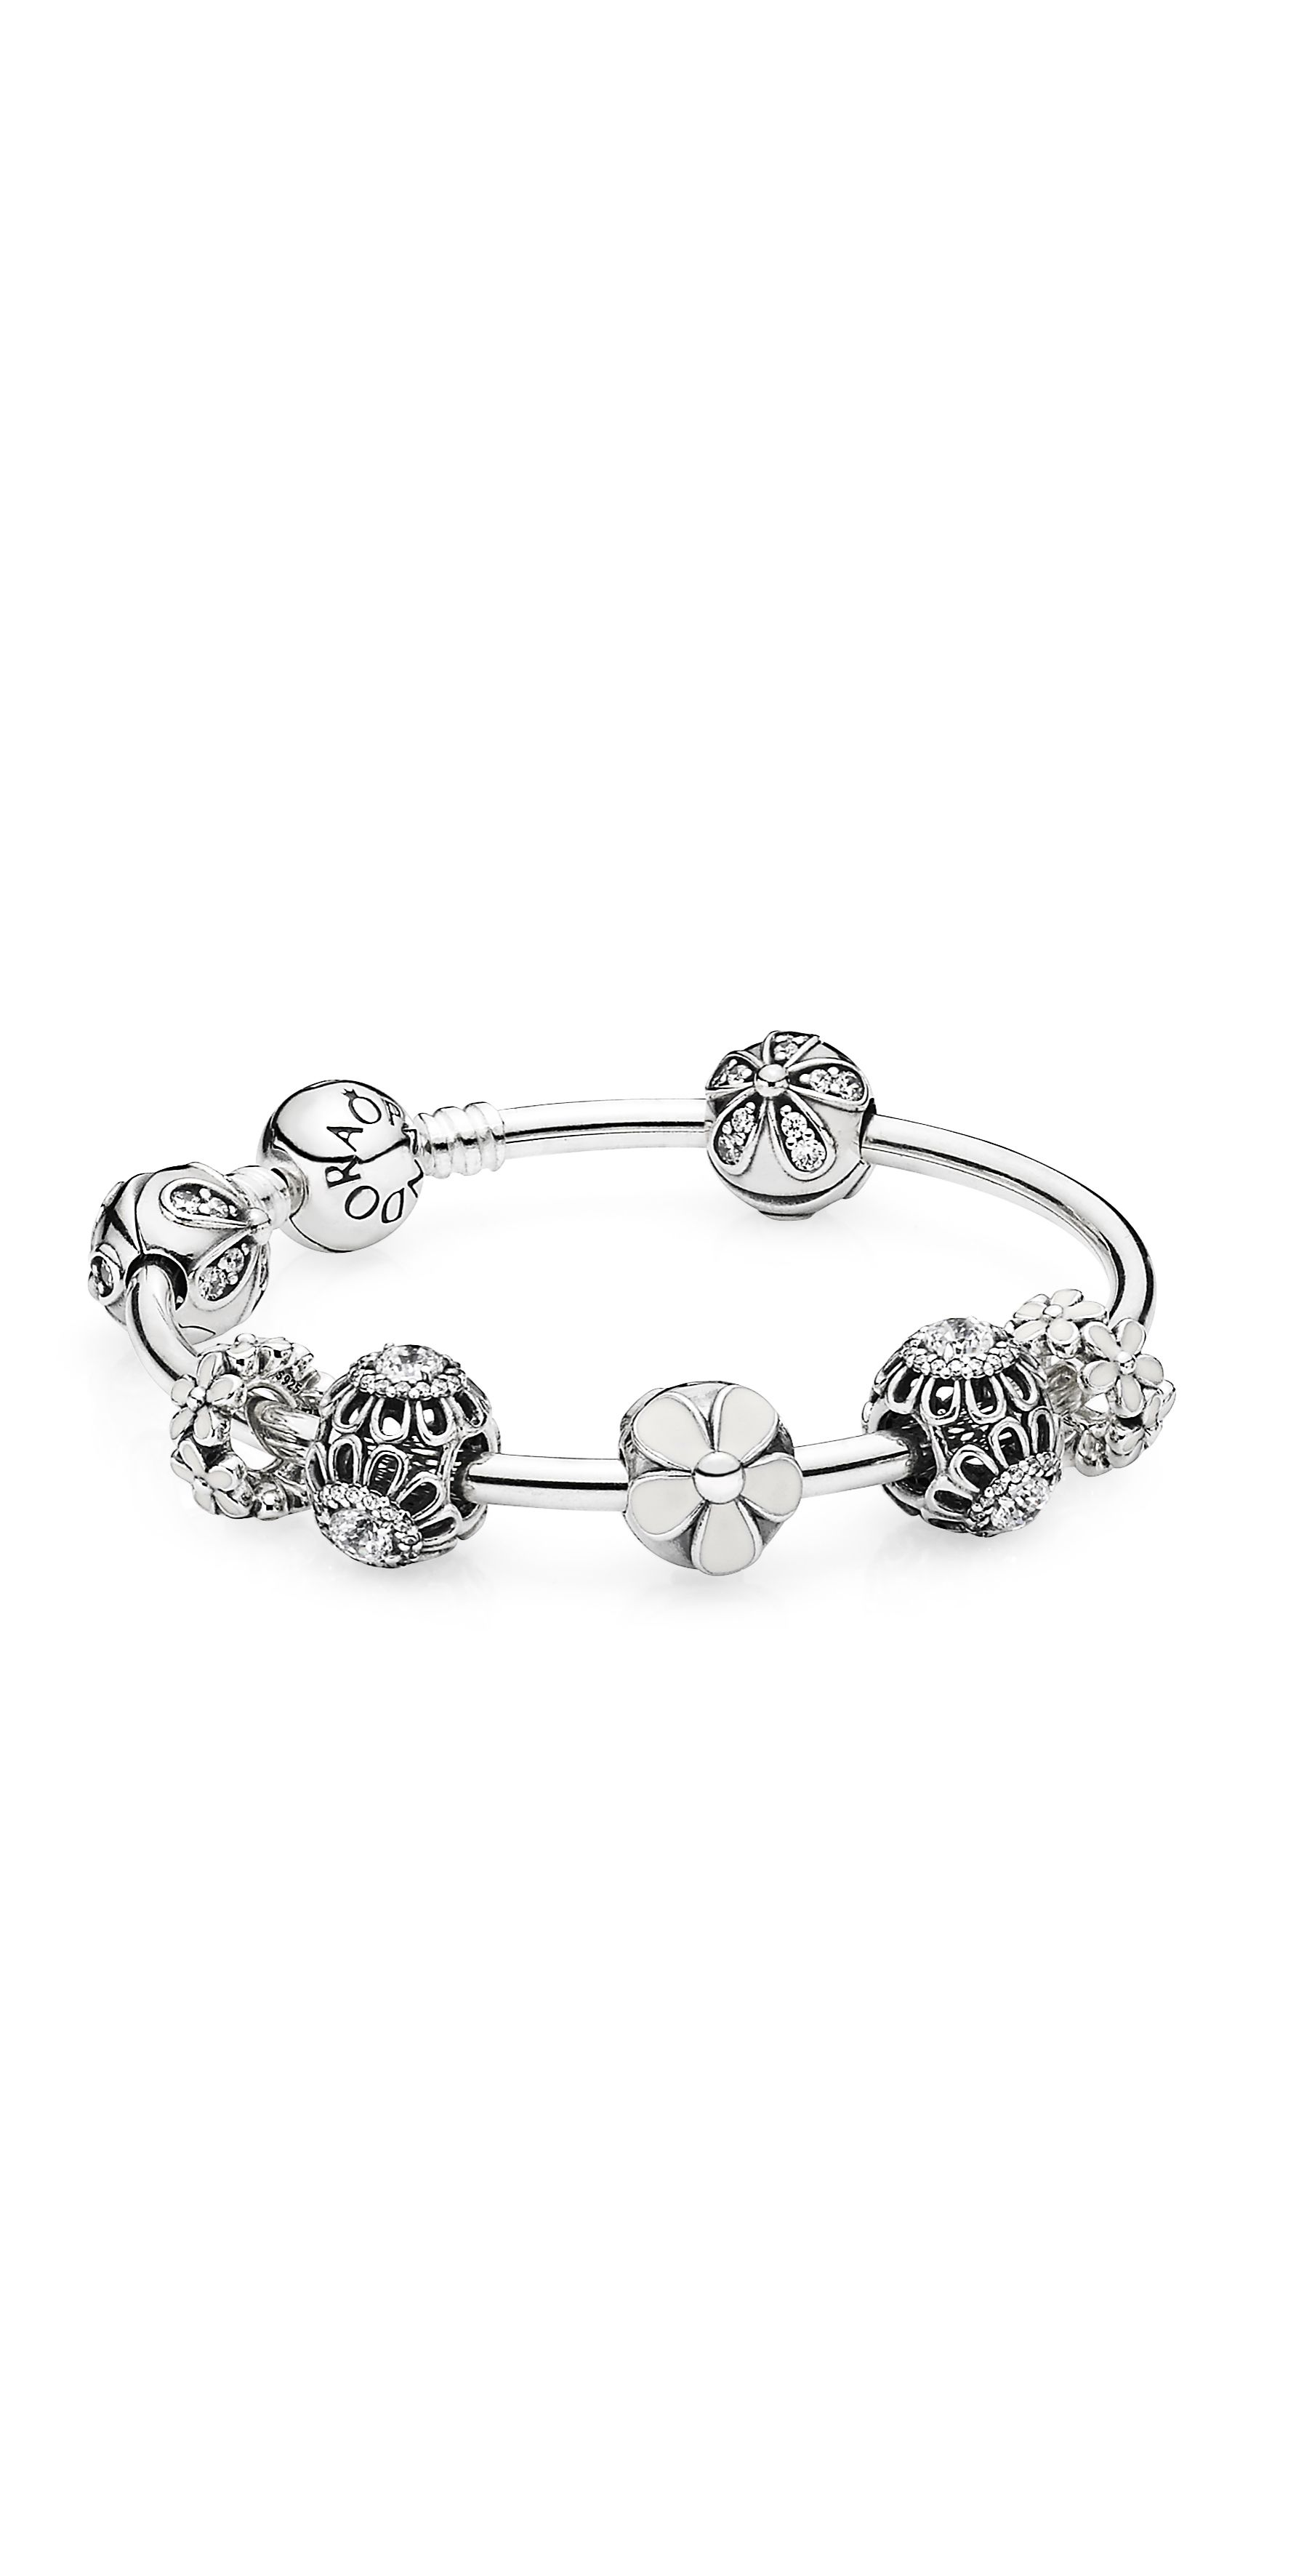 pin i by jewelry usa charms work on charm yes pandora together pinterest put at bracelet